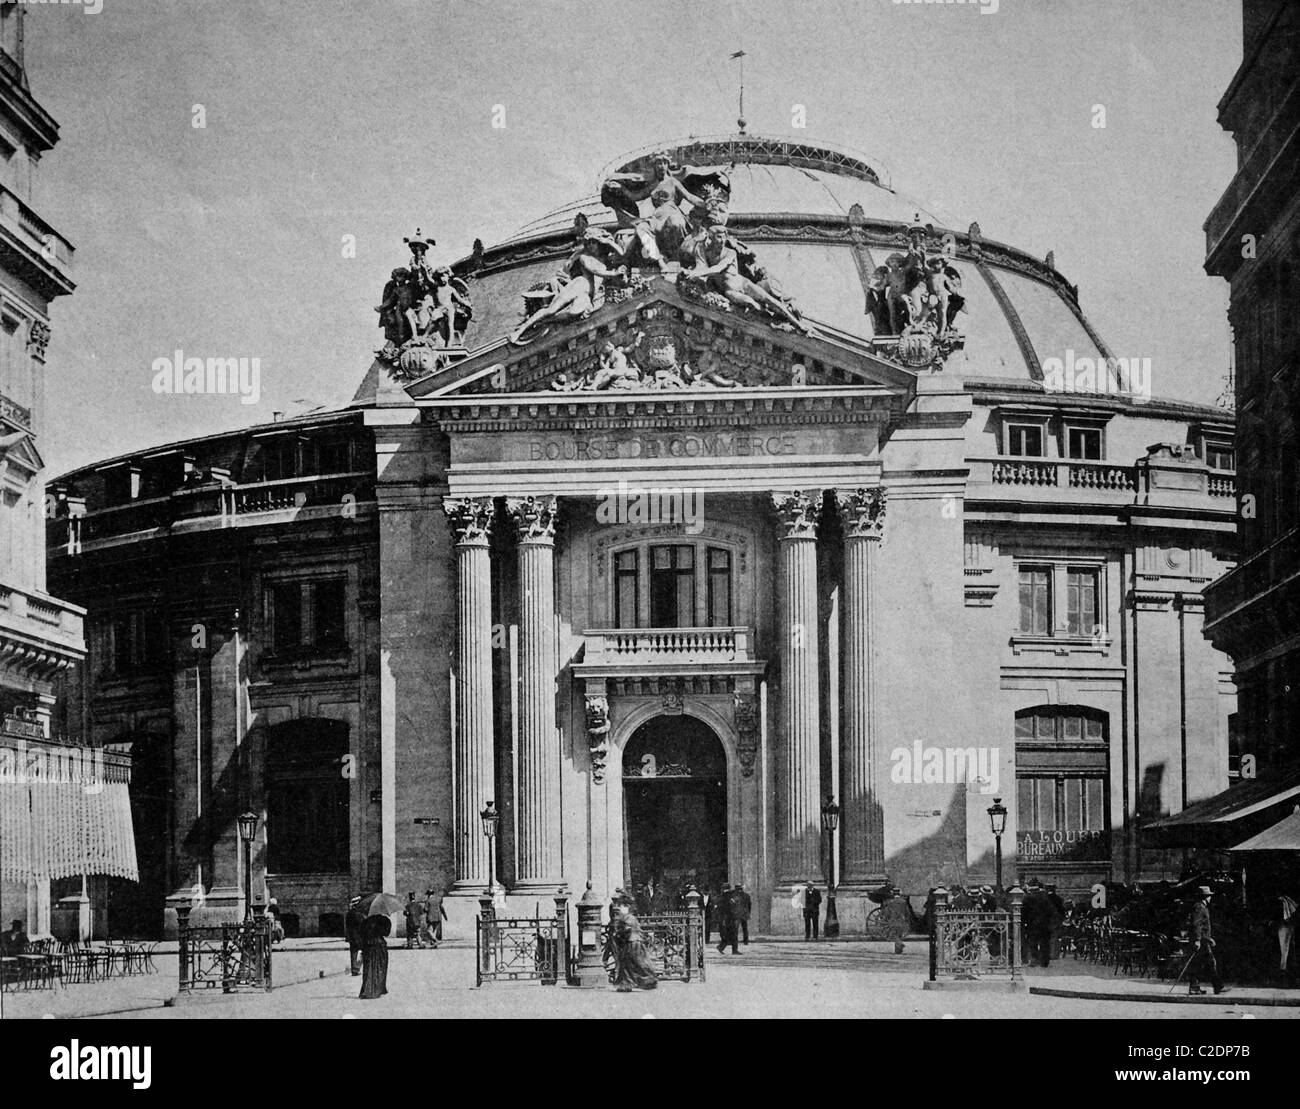 One of the first autotypes of La Bourse du Commerce, Paris, France, historical photograph, 1884 - Stock Image